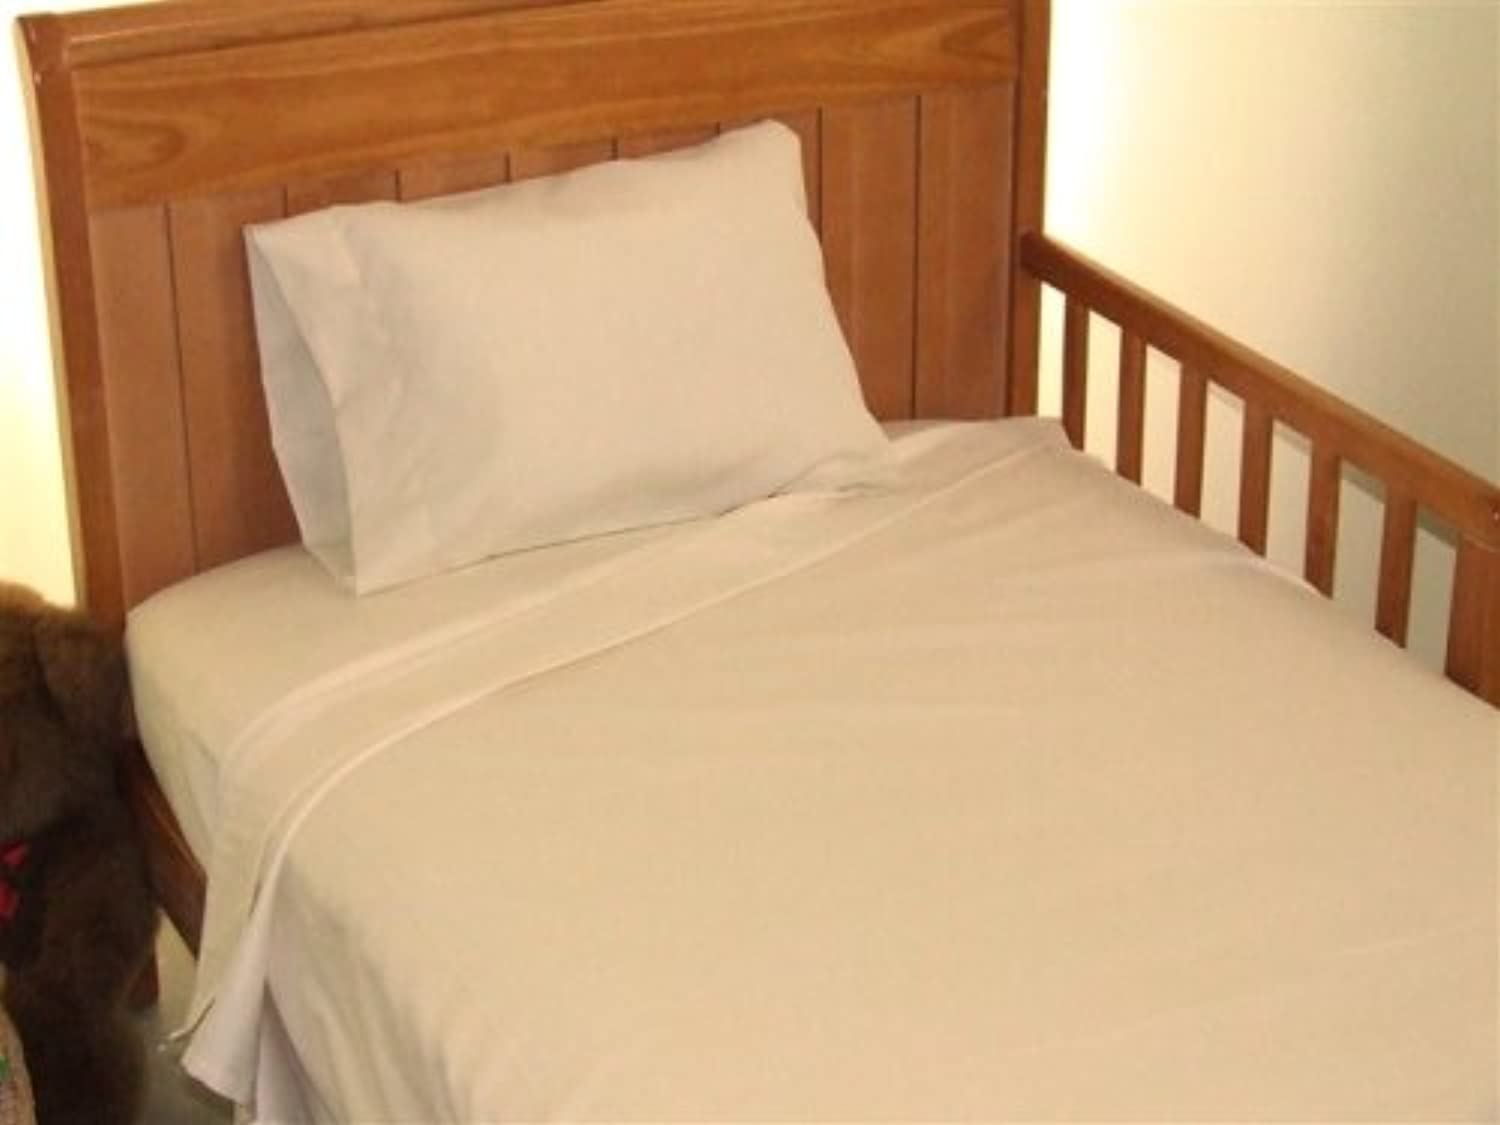 Toddler Bed Sheet Set 100% cotton Color: Ivory by AB Lifestyles